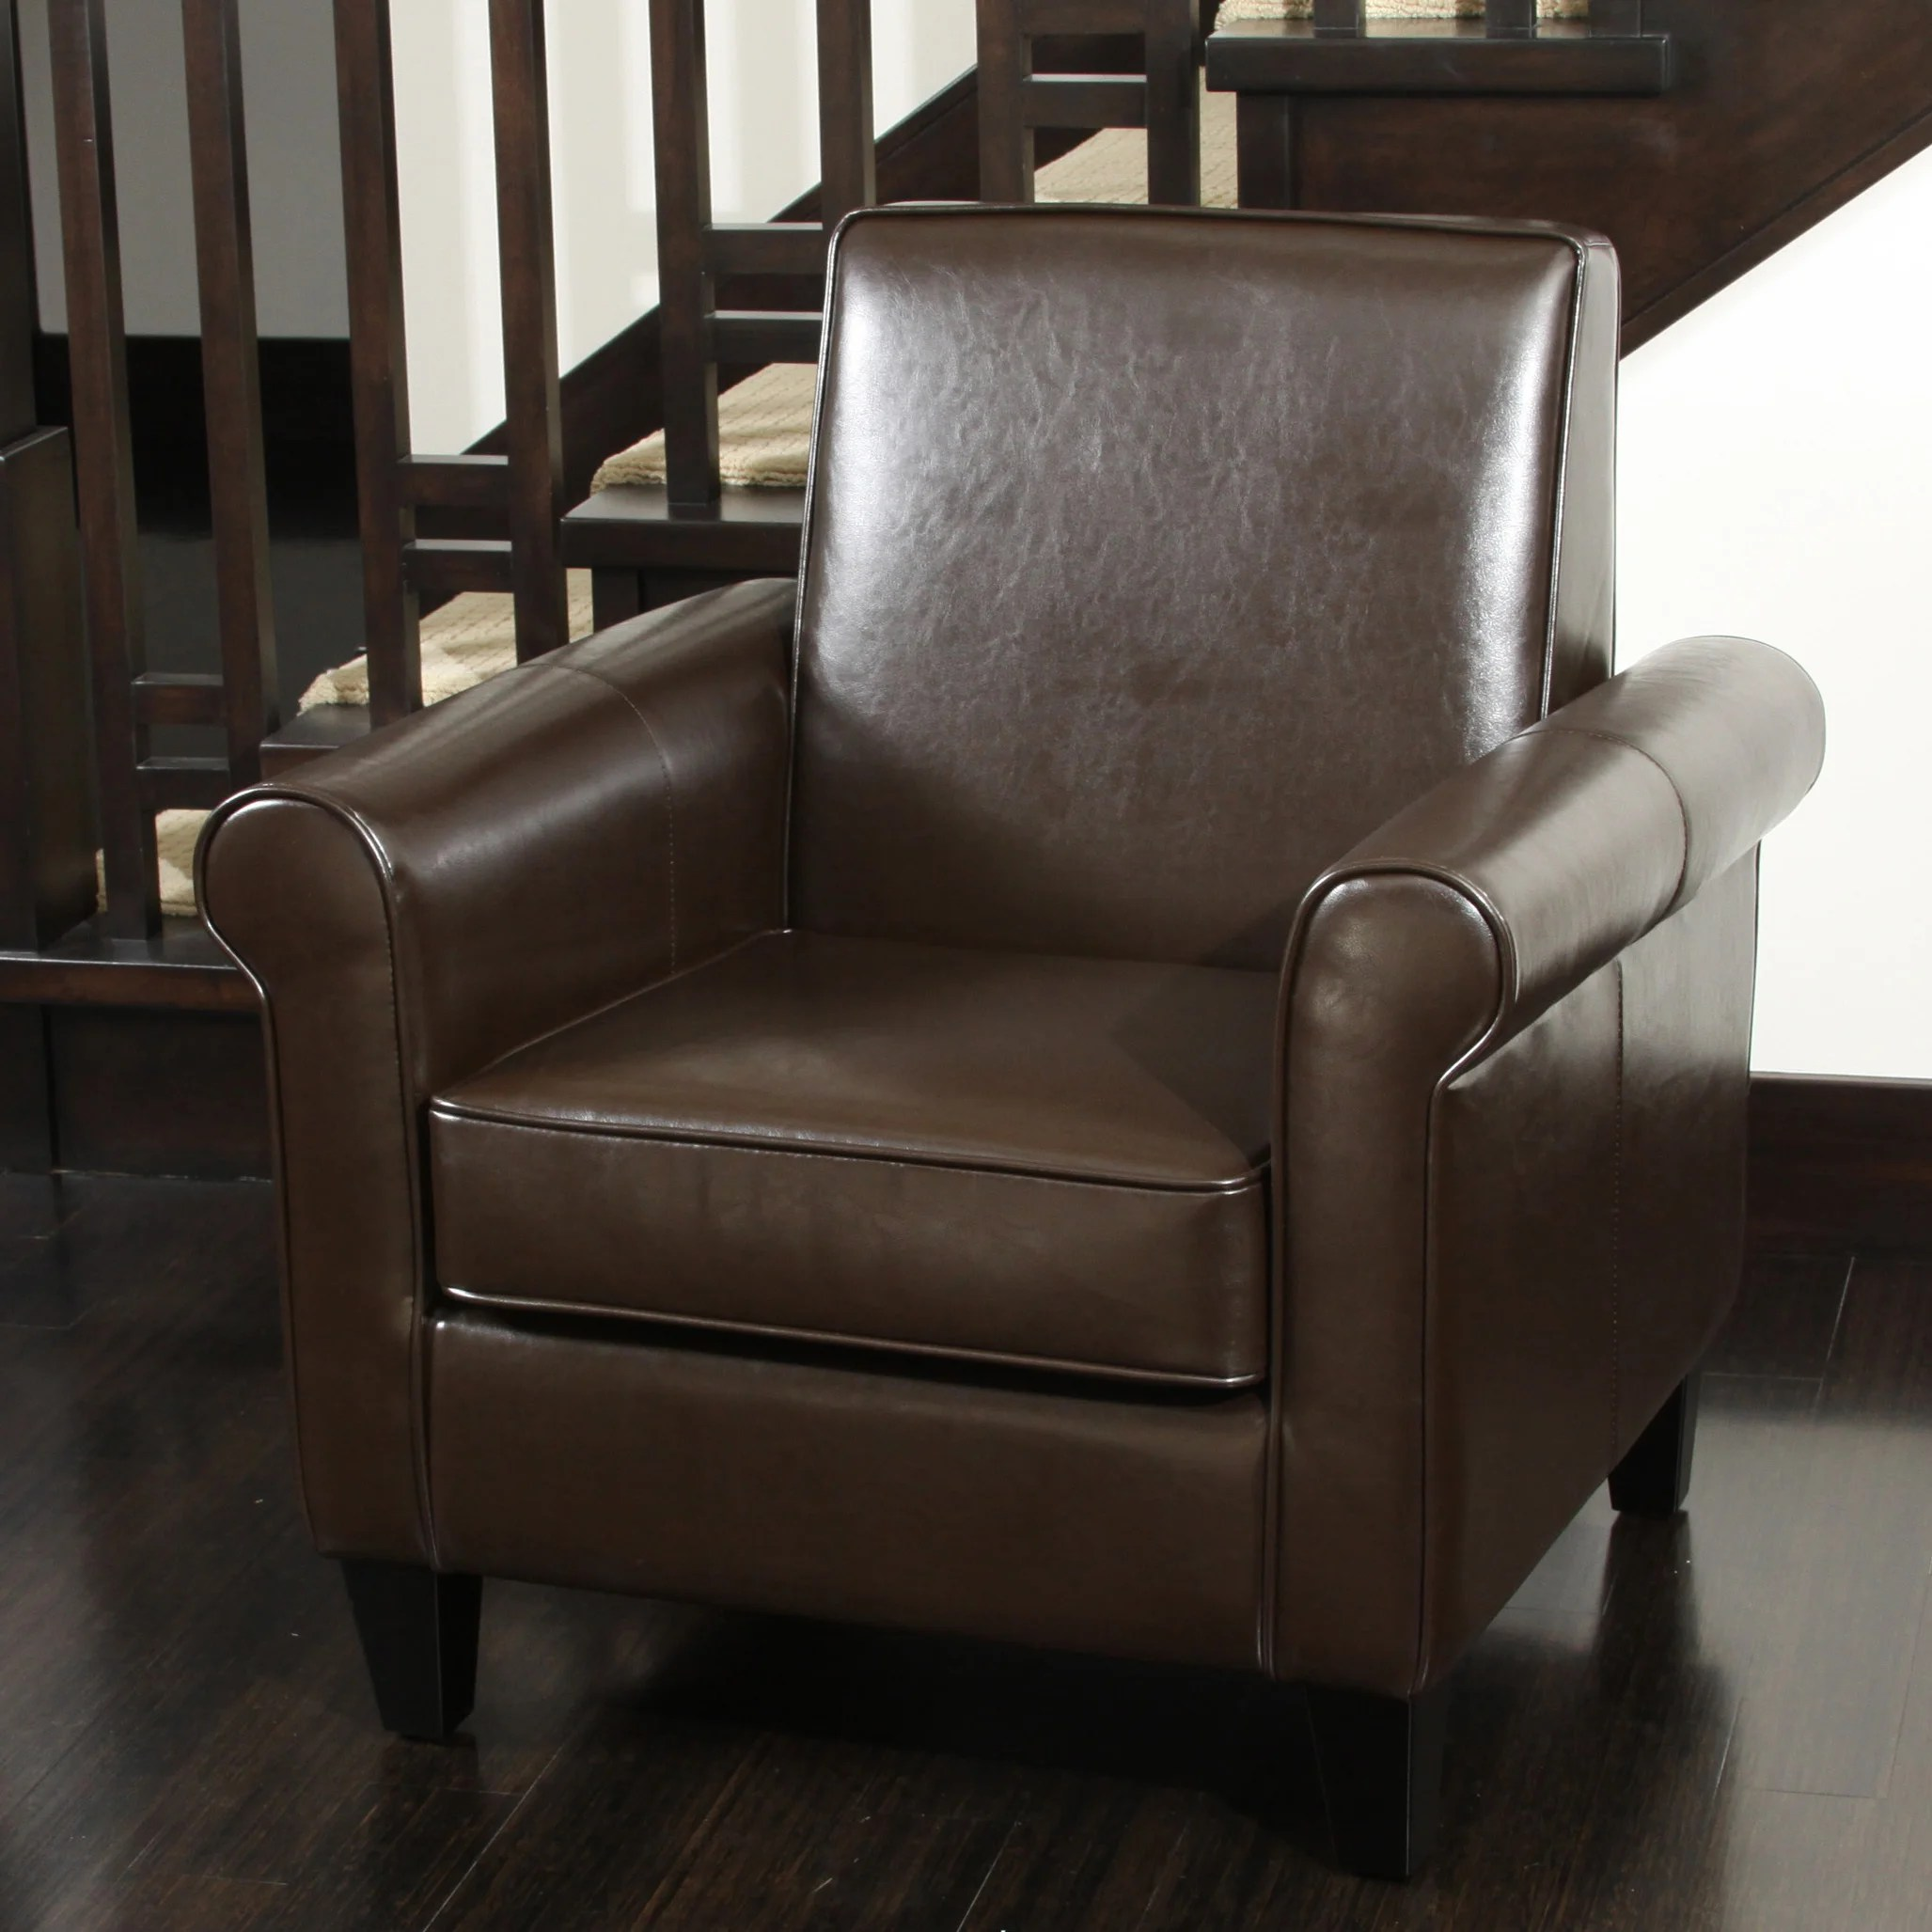 Overstock Chairs Christopher Knight Home Freemont Brown Bonded Leather Club